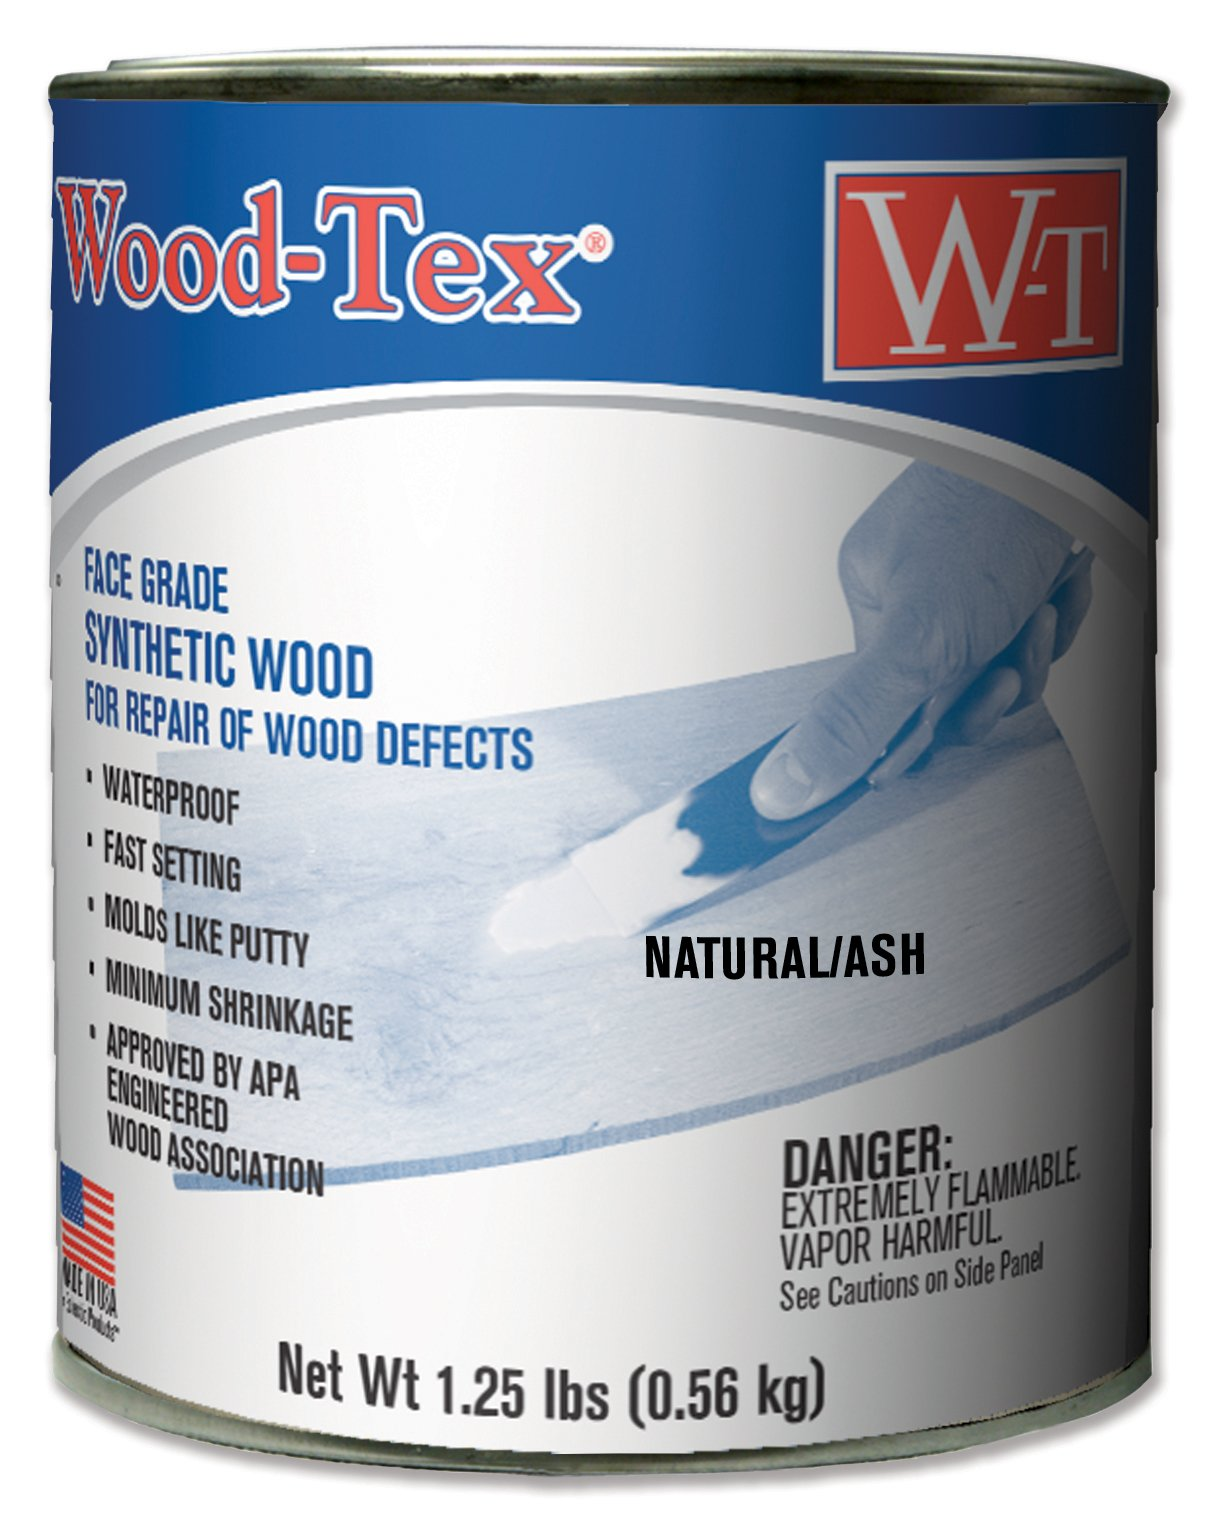 Wood-Tex 34021026 Wood Filler Adhesive - Pint, Natural/Ash